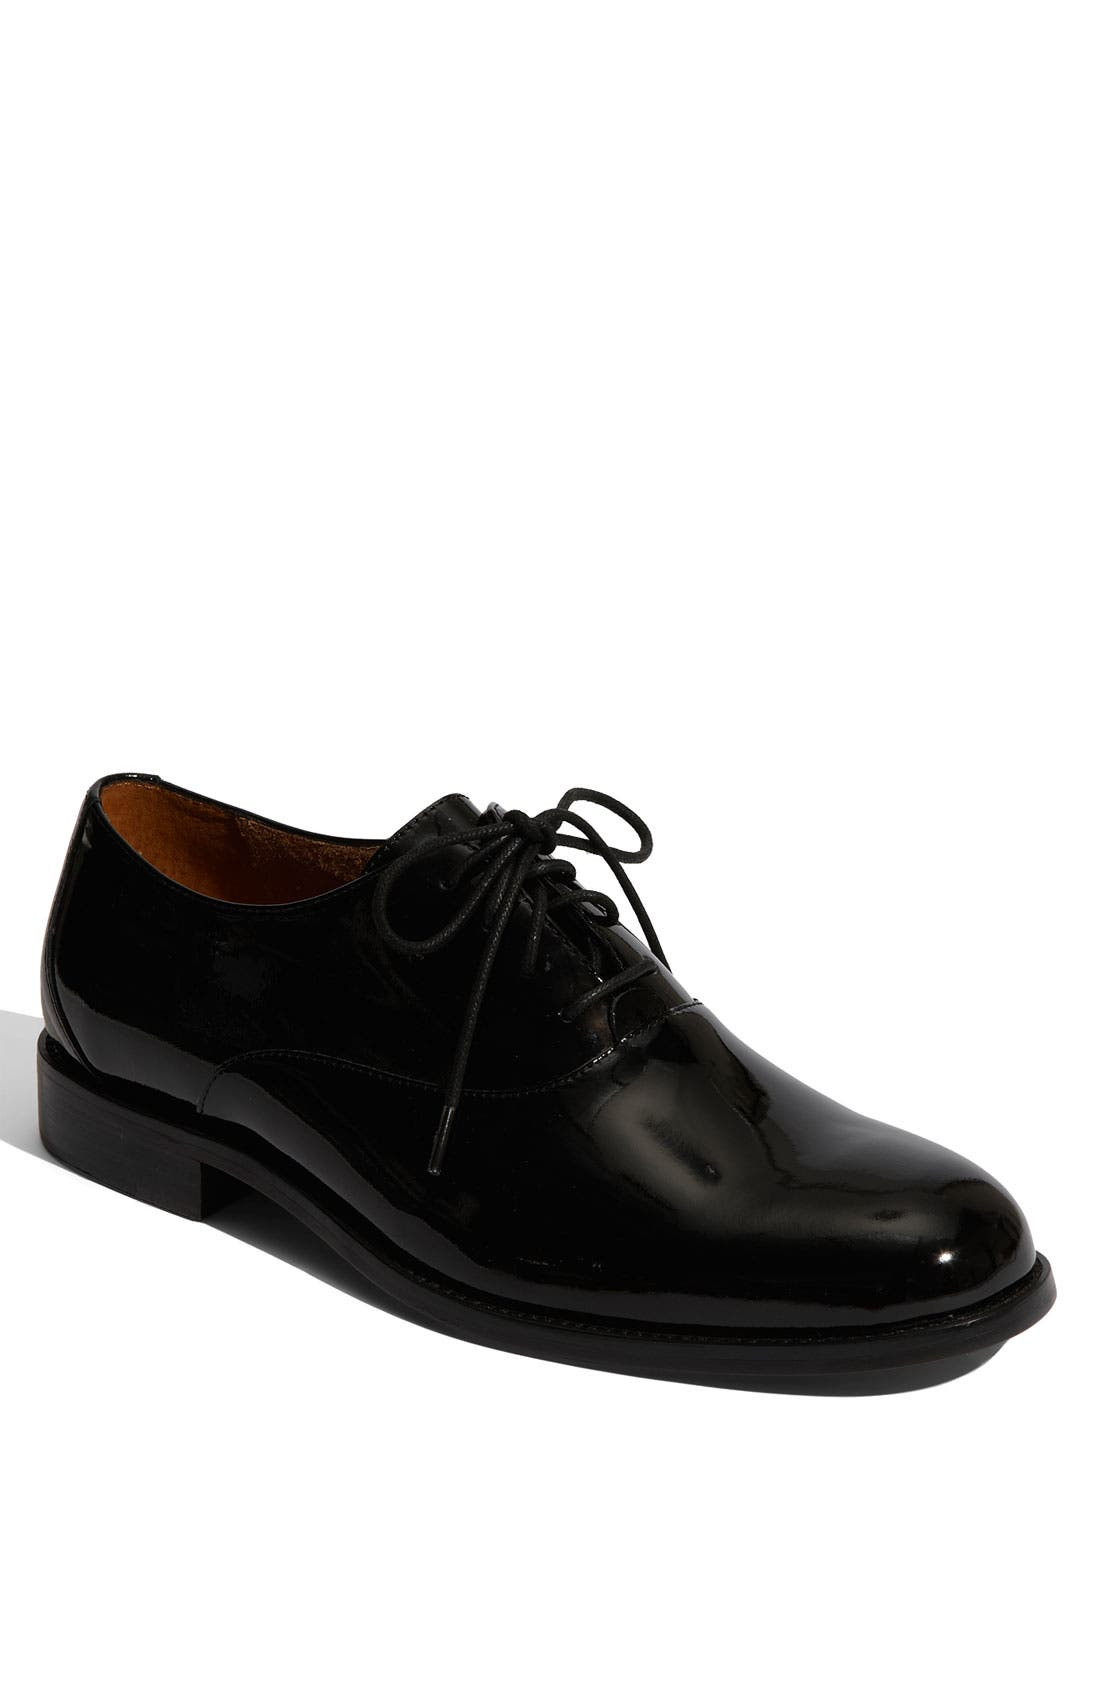 Florsheim 'Kingston' Patent Leather Oxford (Men)